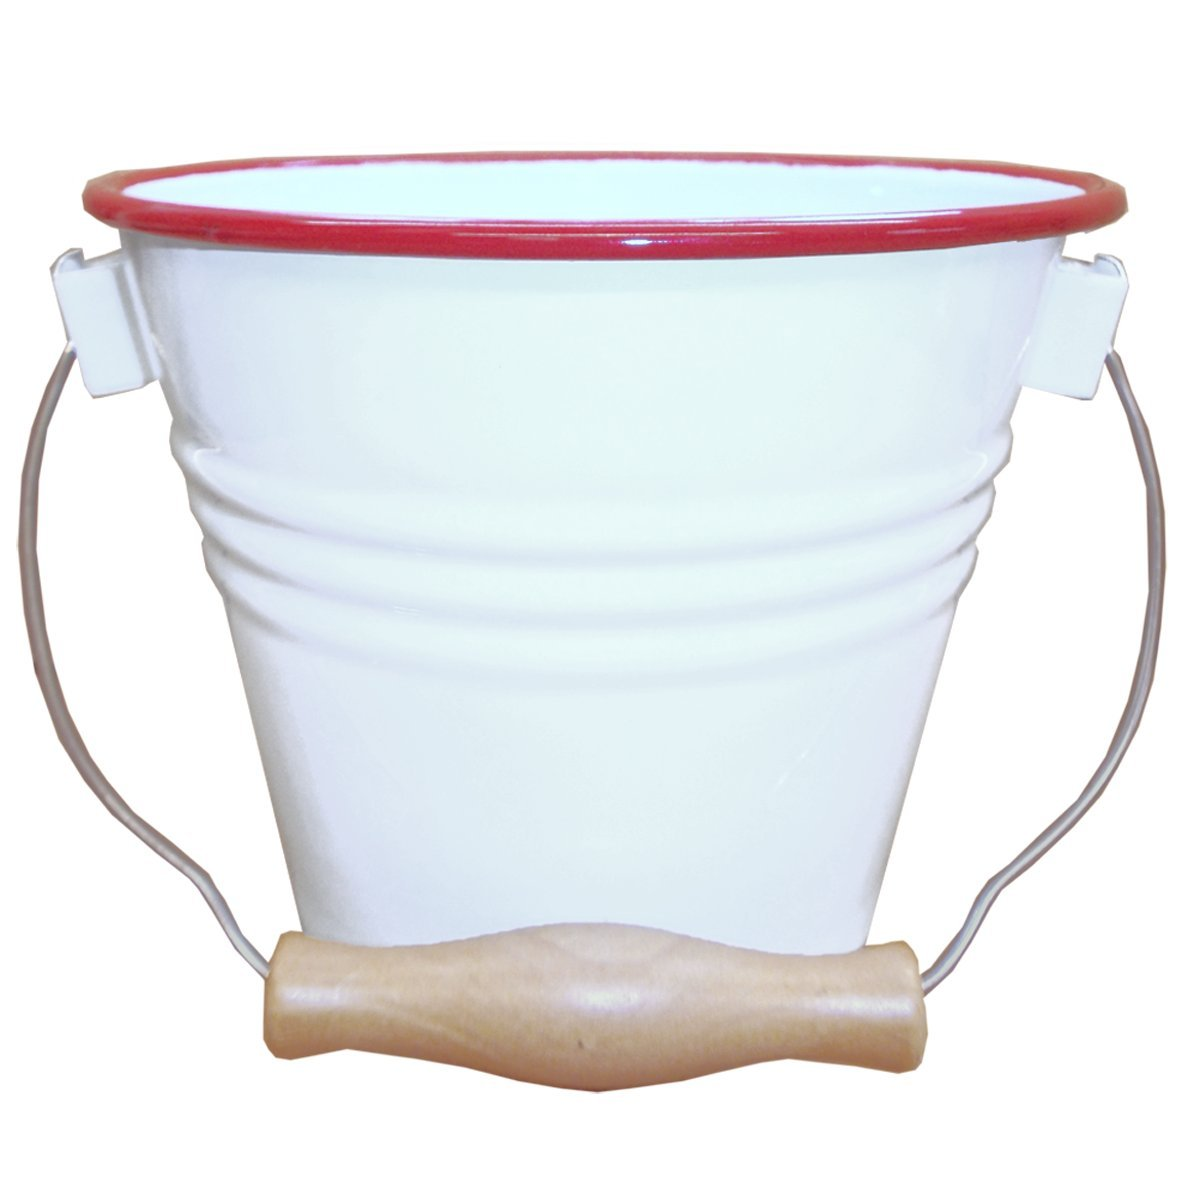 Enamelware Small Pail - Solid White with Red Rim